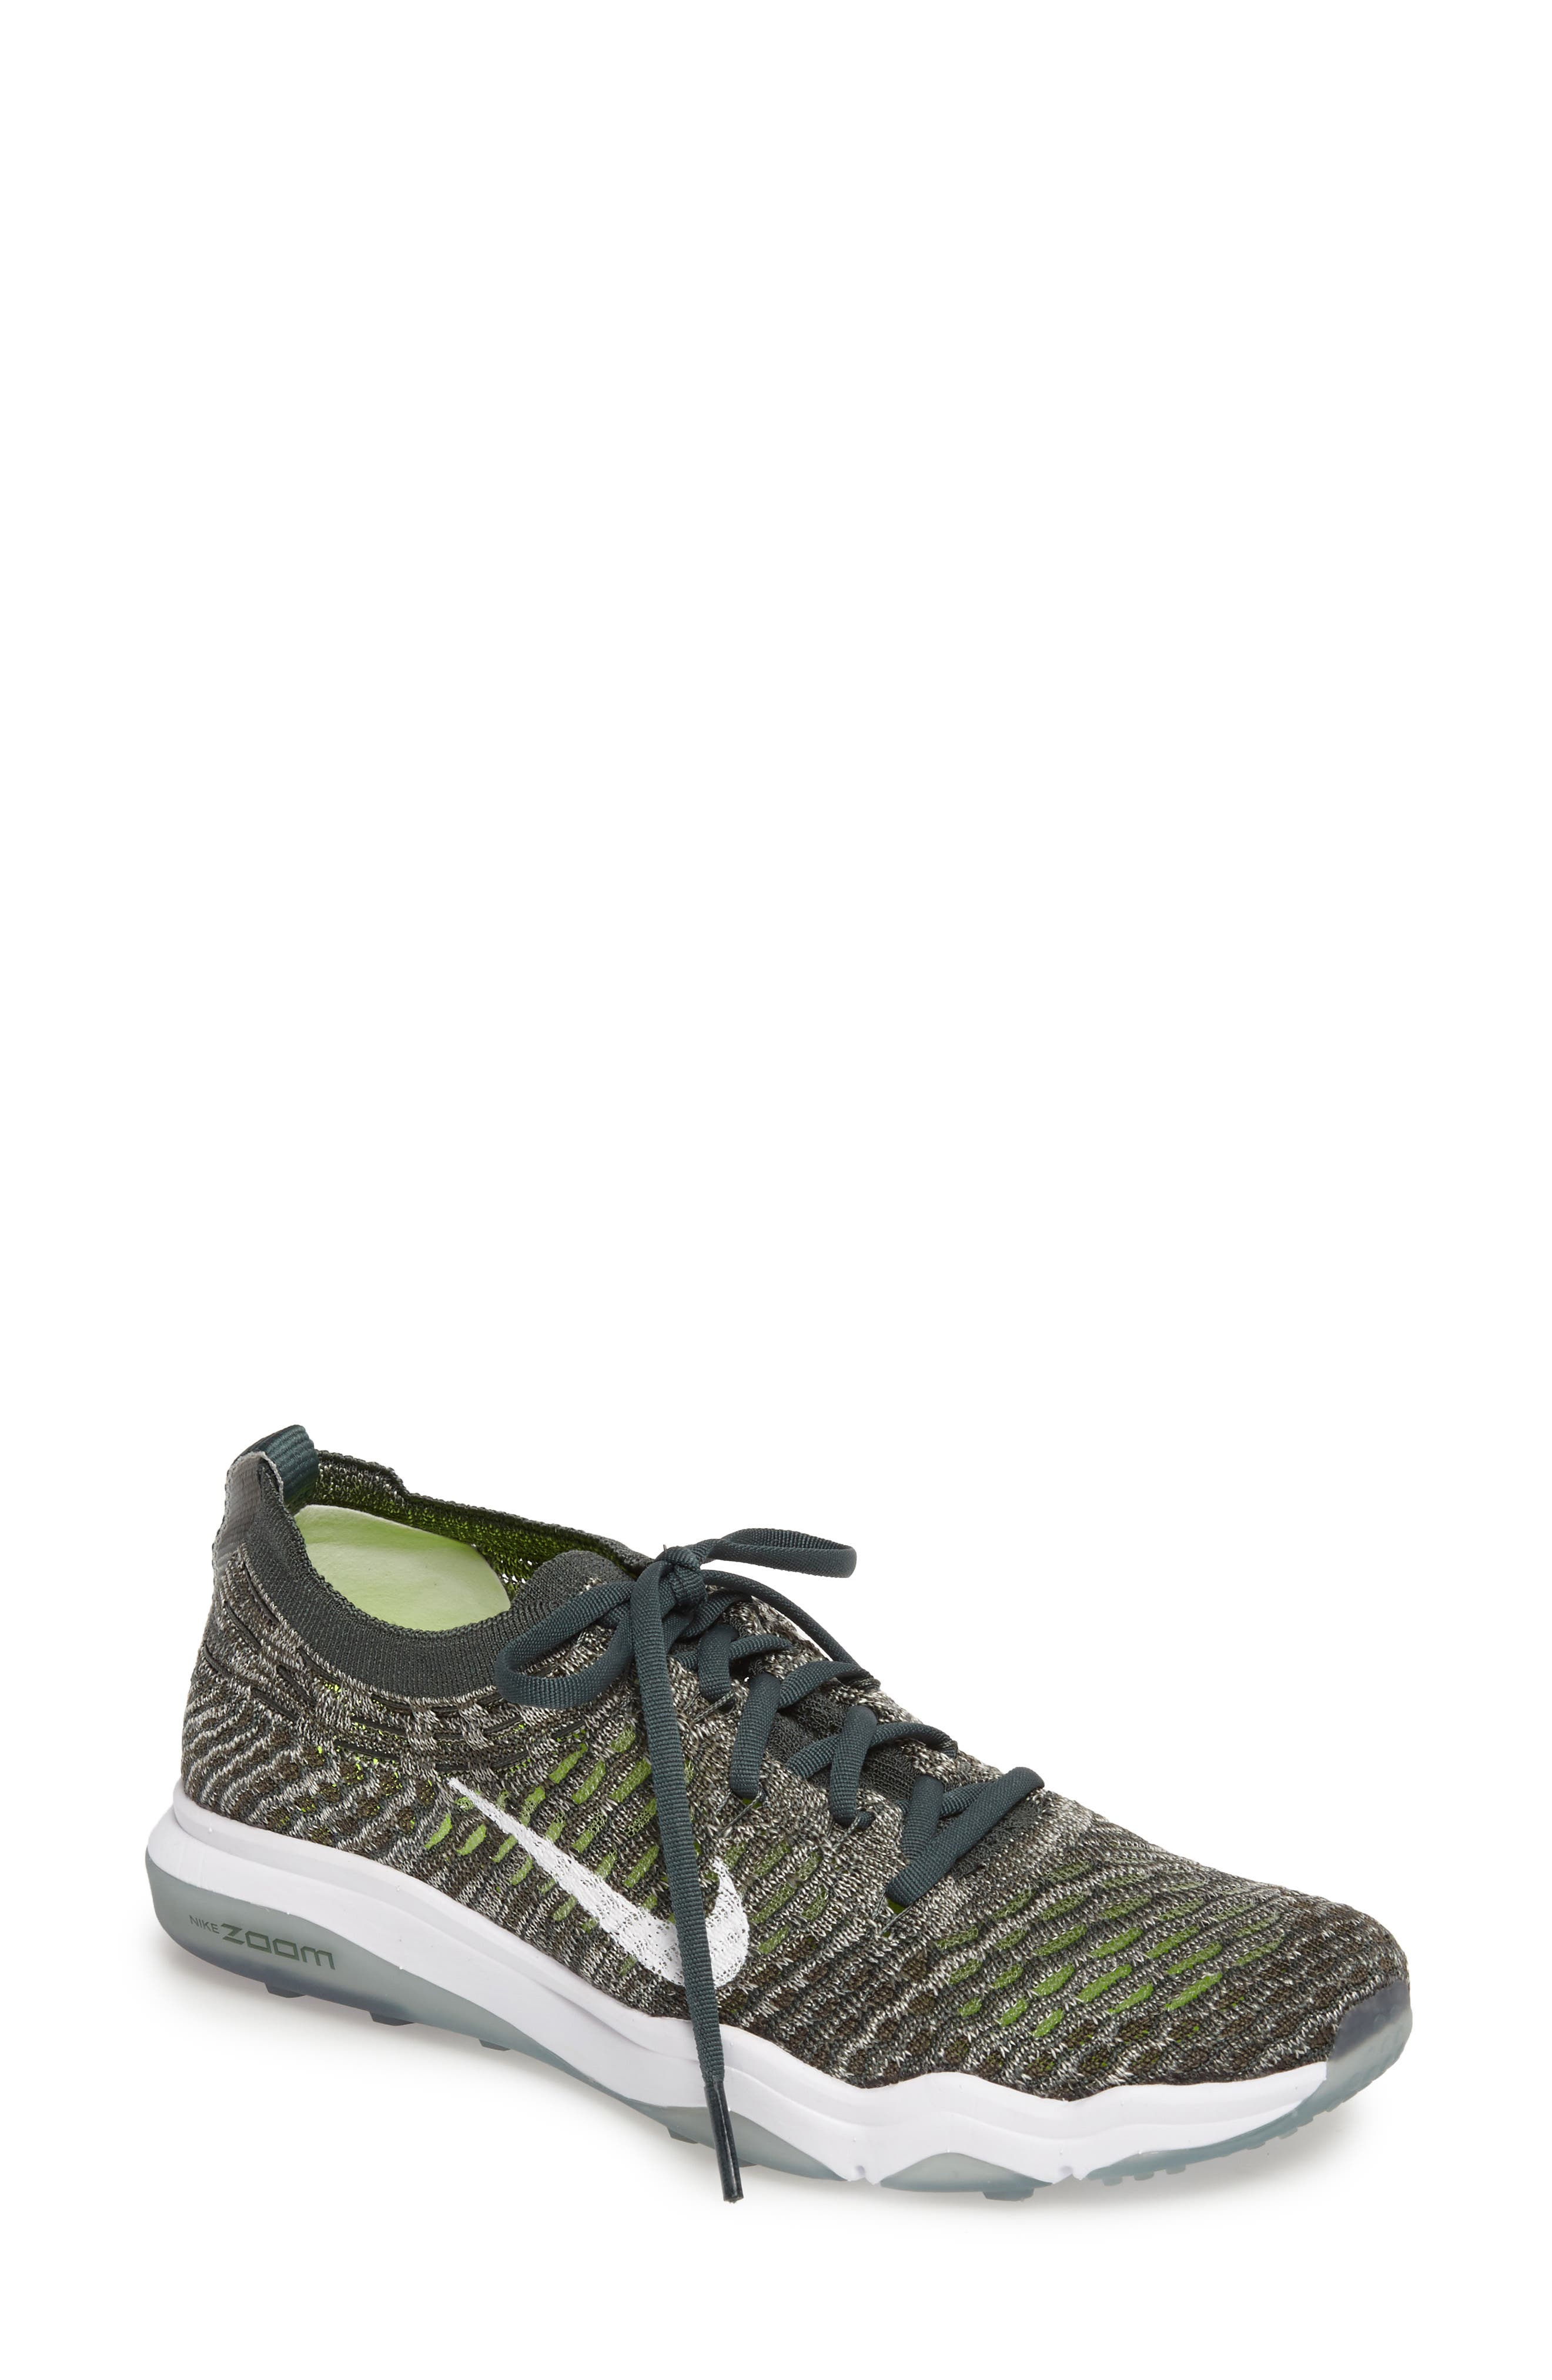 Air Zoom Fearless Flyknit Training Shoe,                             Main thumbnail 3, color,